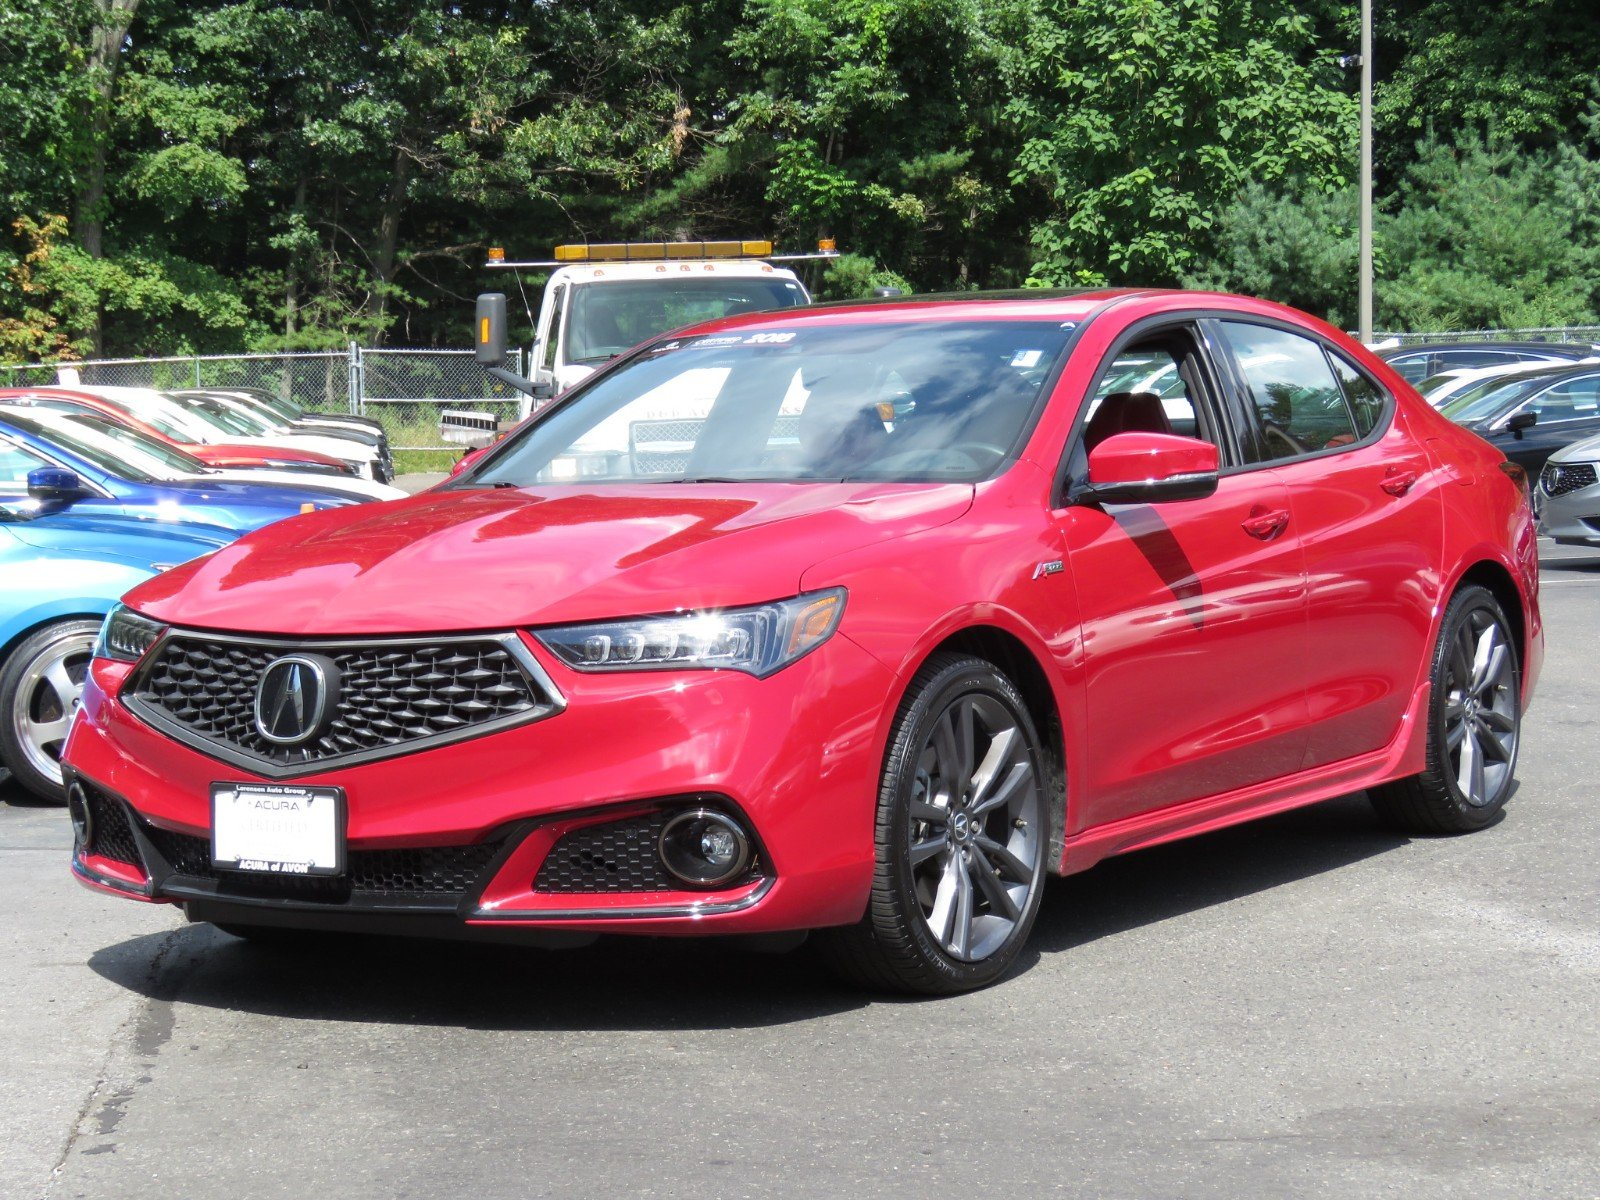 Pre Owned 2018 Acura TLX w A SPEC Pkg 4dr Car in Westbrook